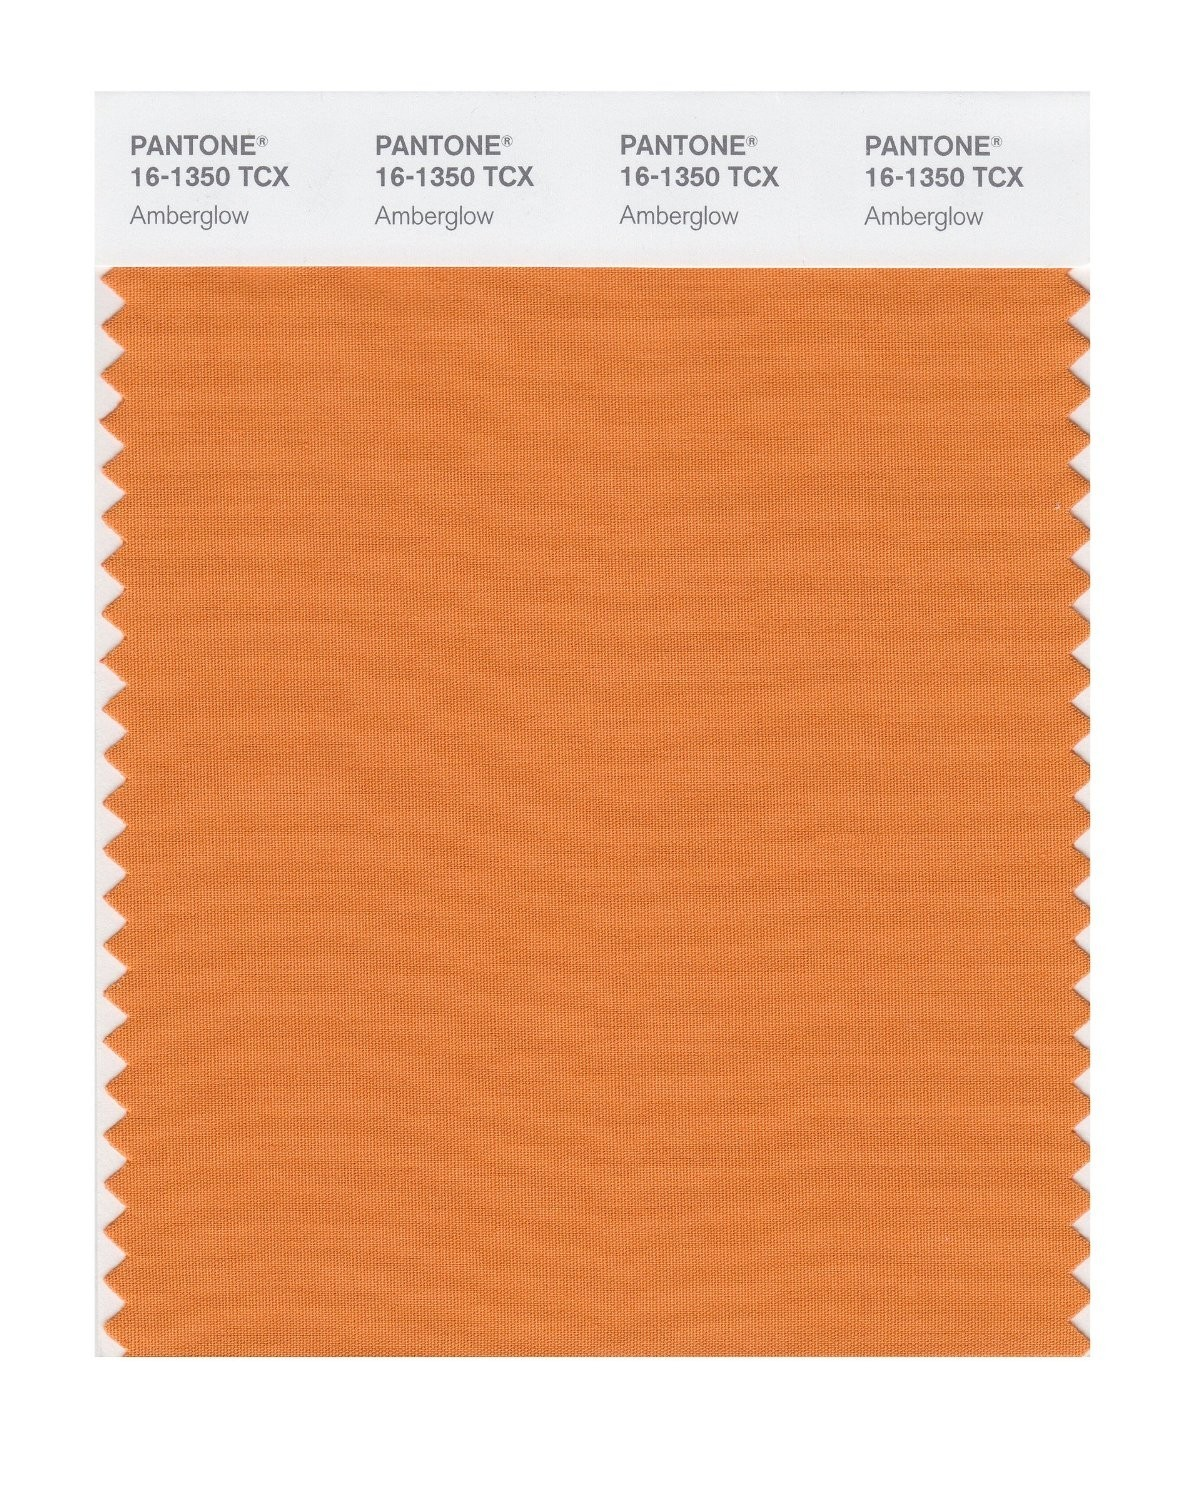 Pantone 16-1350 TCX Swatch Card Amberglow